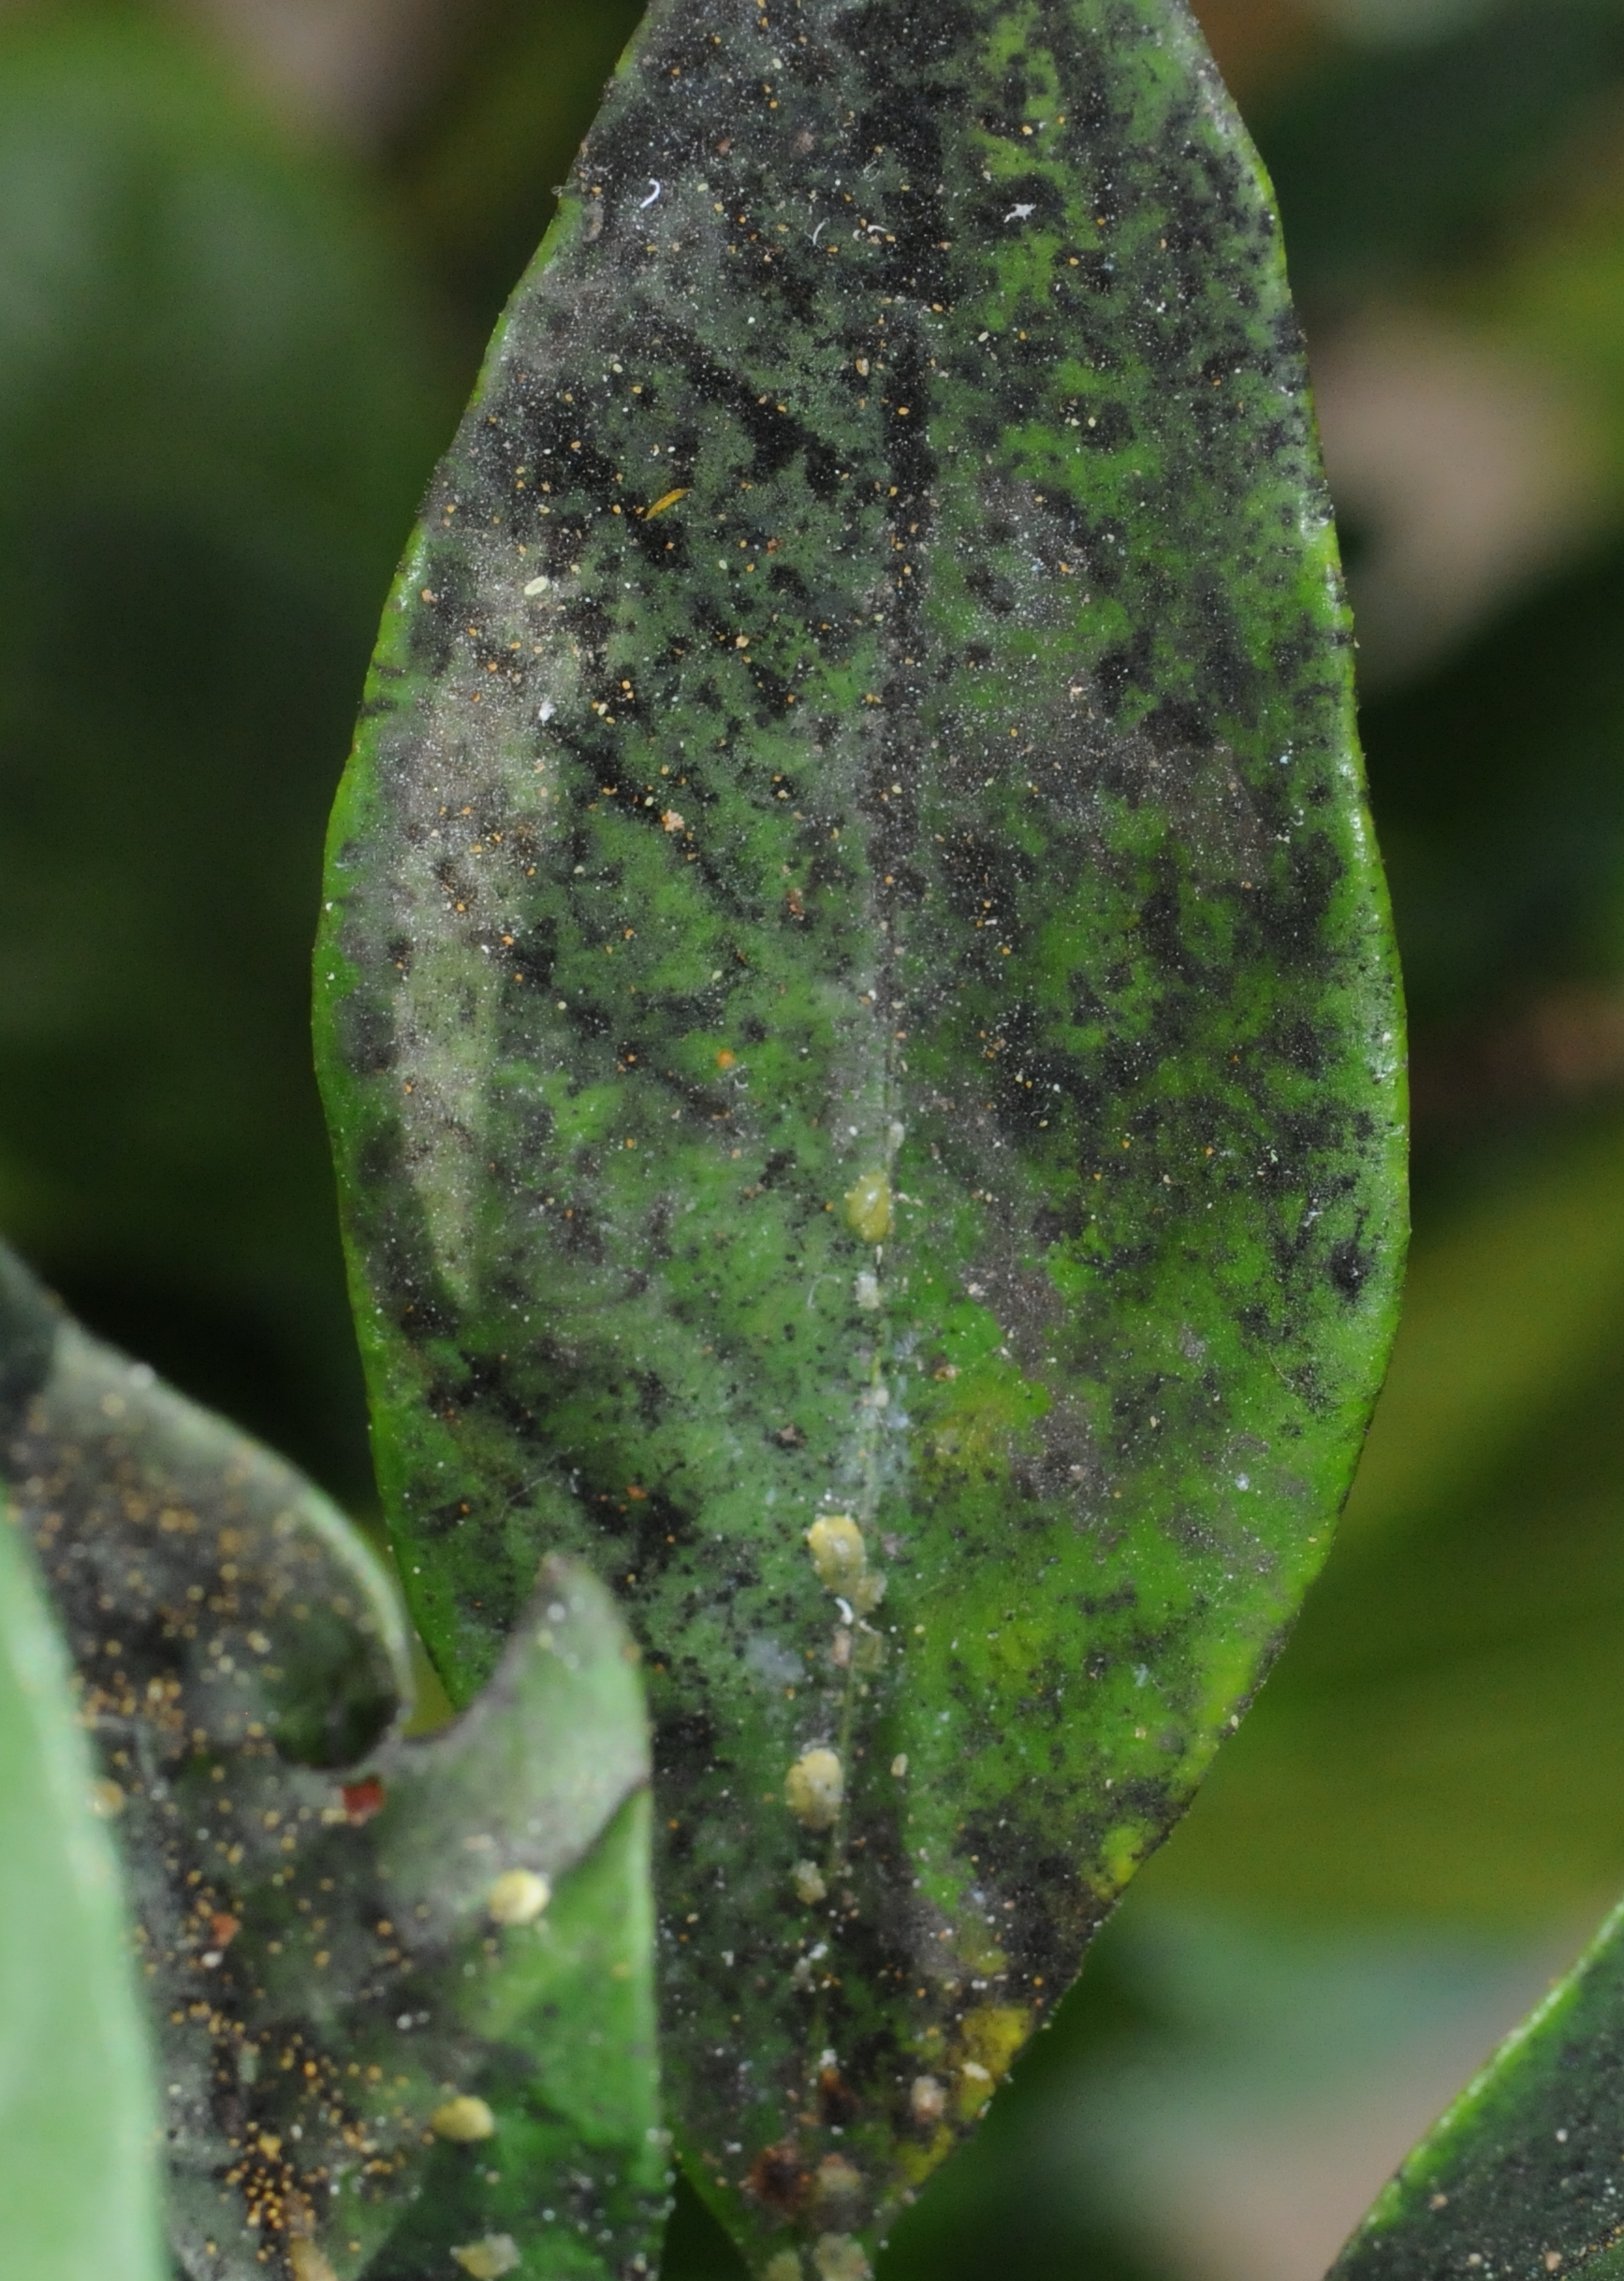 Honeydew serves as the substrate for an ugly leaf-coating fungus called sooty mold.